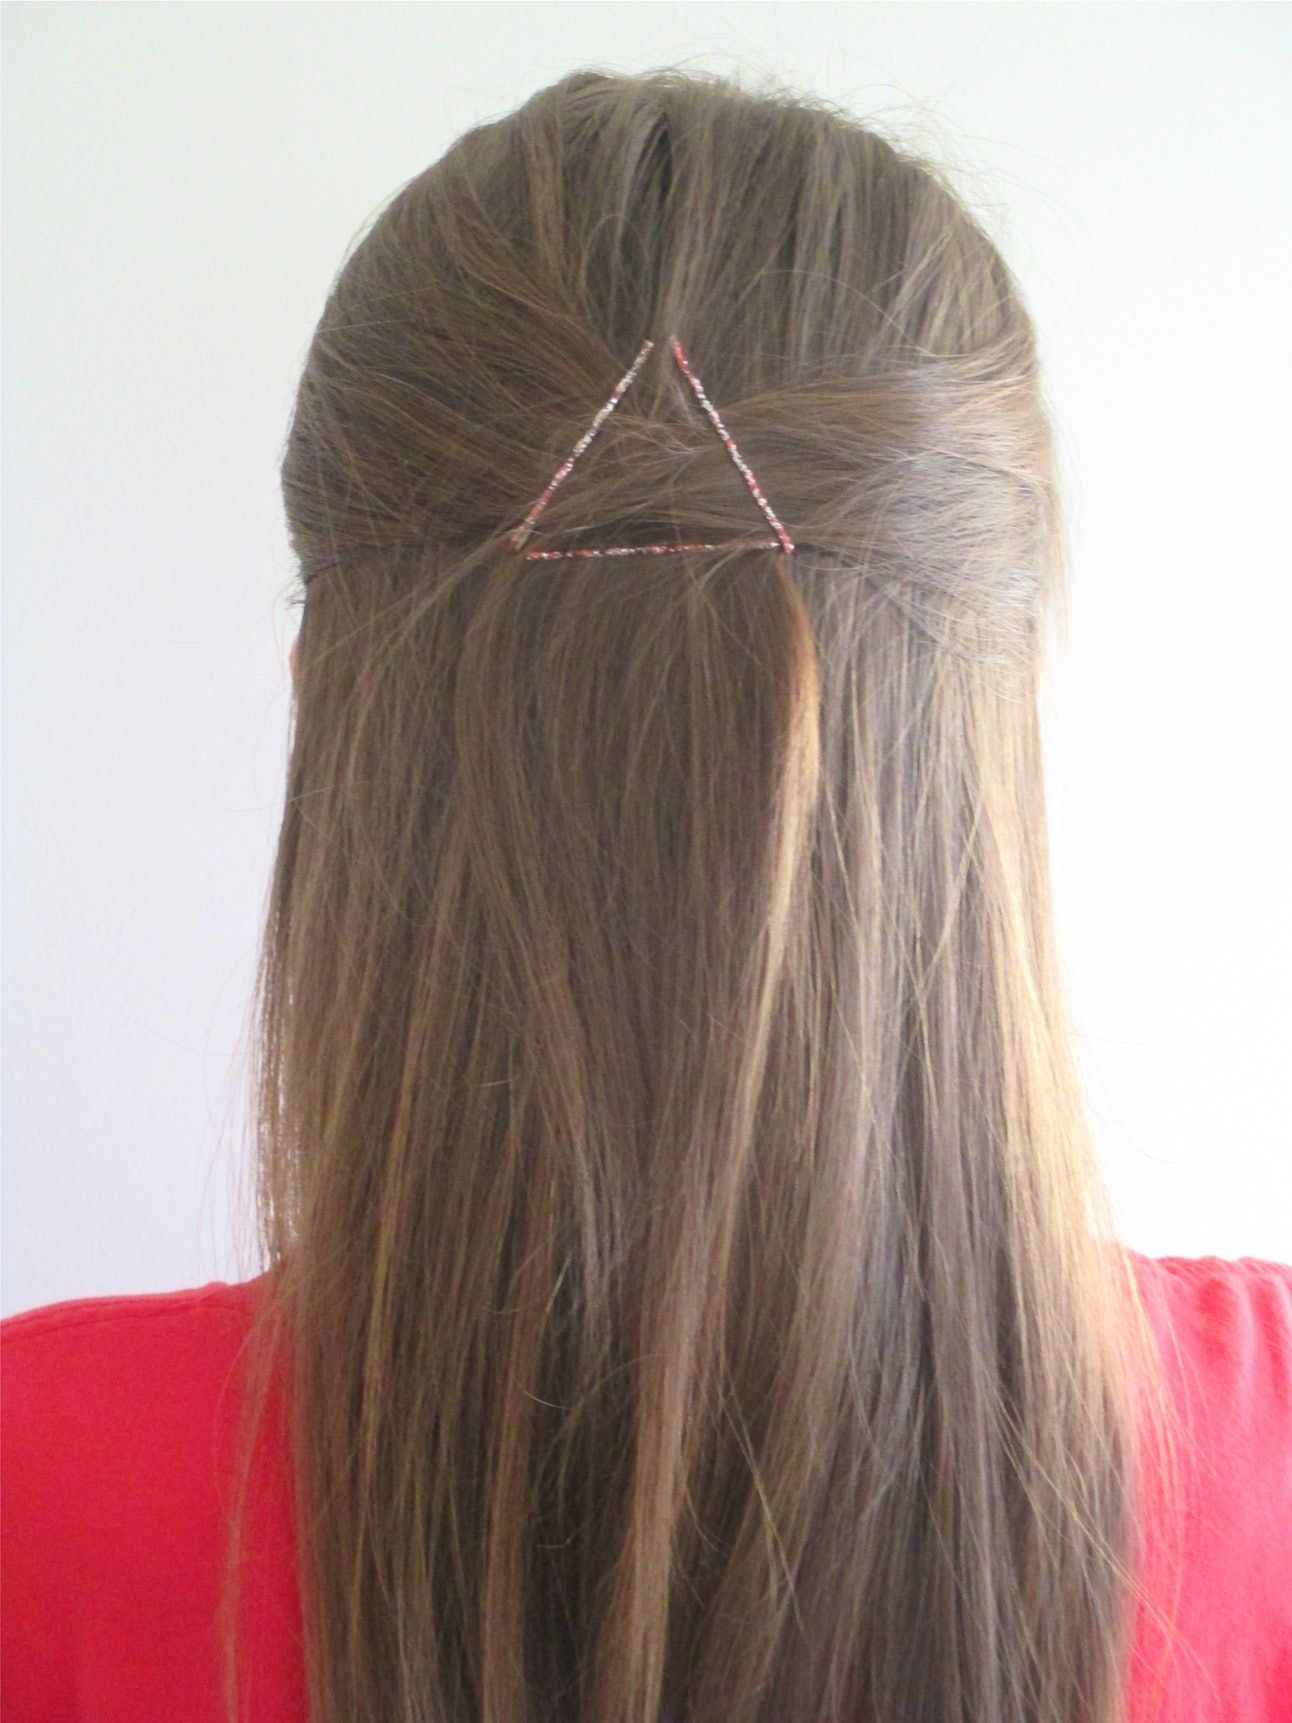 5 Cute Easy Hairstyles Using Only Bobby Pins Bobby Pin Hairstyles Hair Scarf Styles Headband Hairstyles